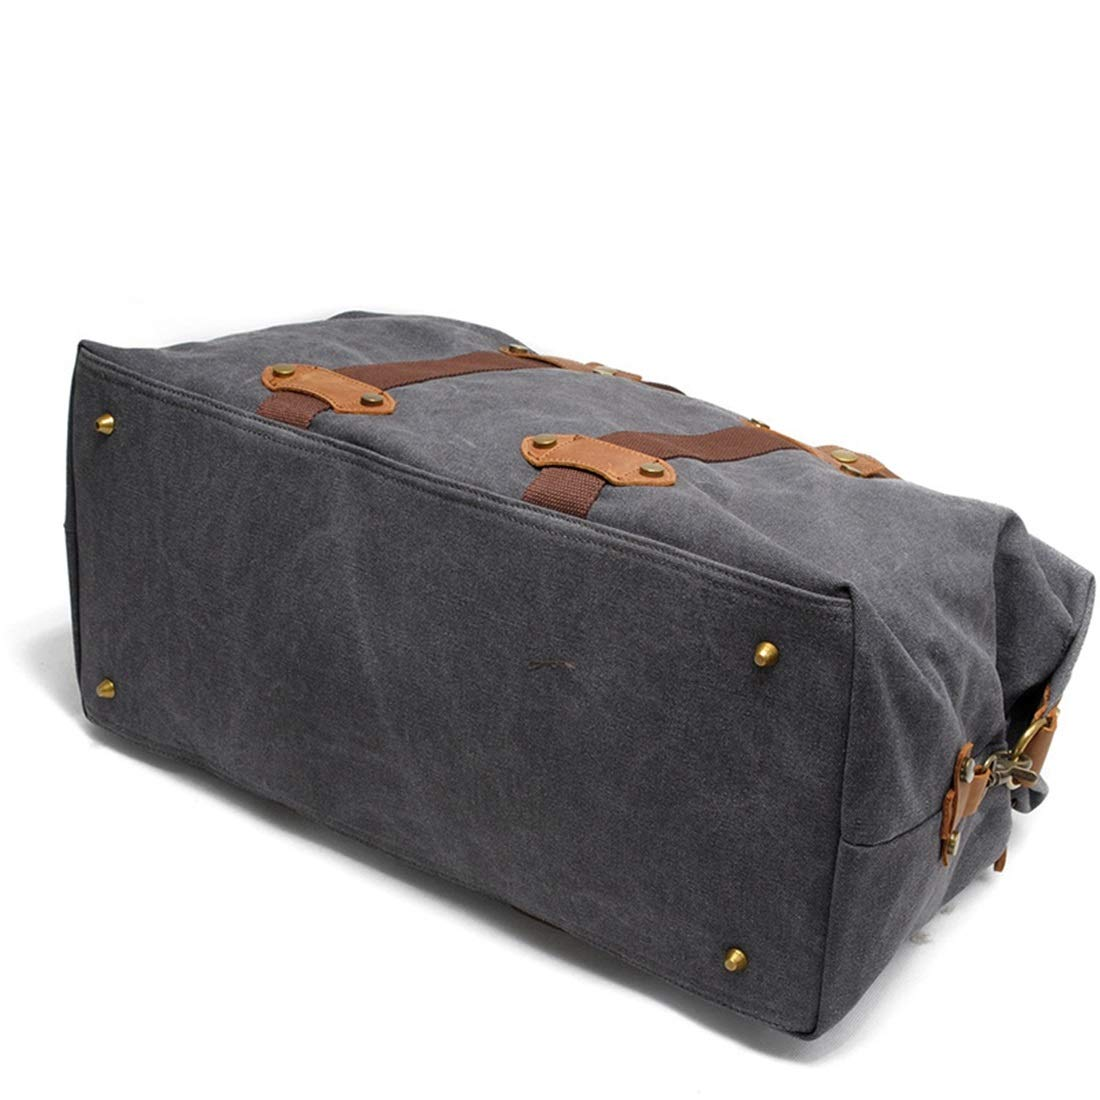 Color : Dark Gray Carriemeow Mens Travel Bags Portable Large Capacity Bags Casual Canvas Shoulder Bags